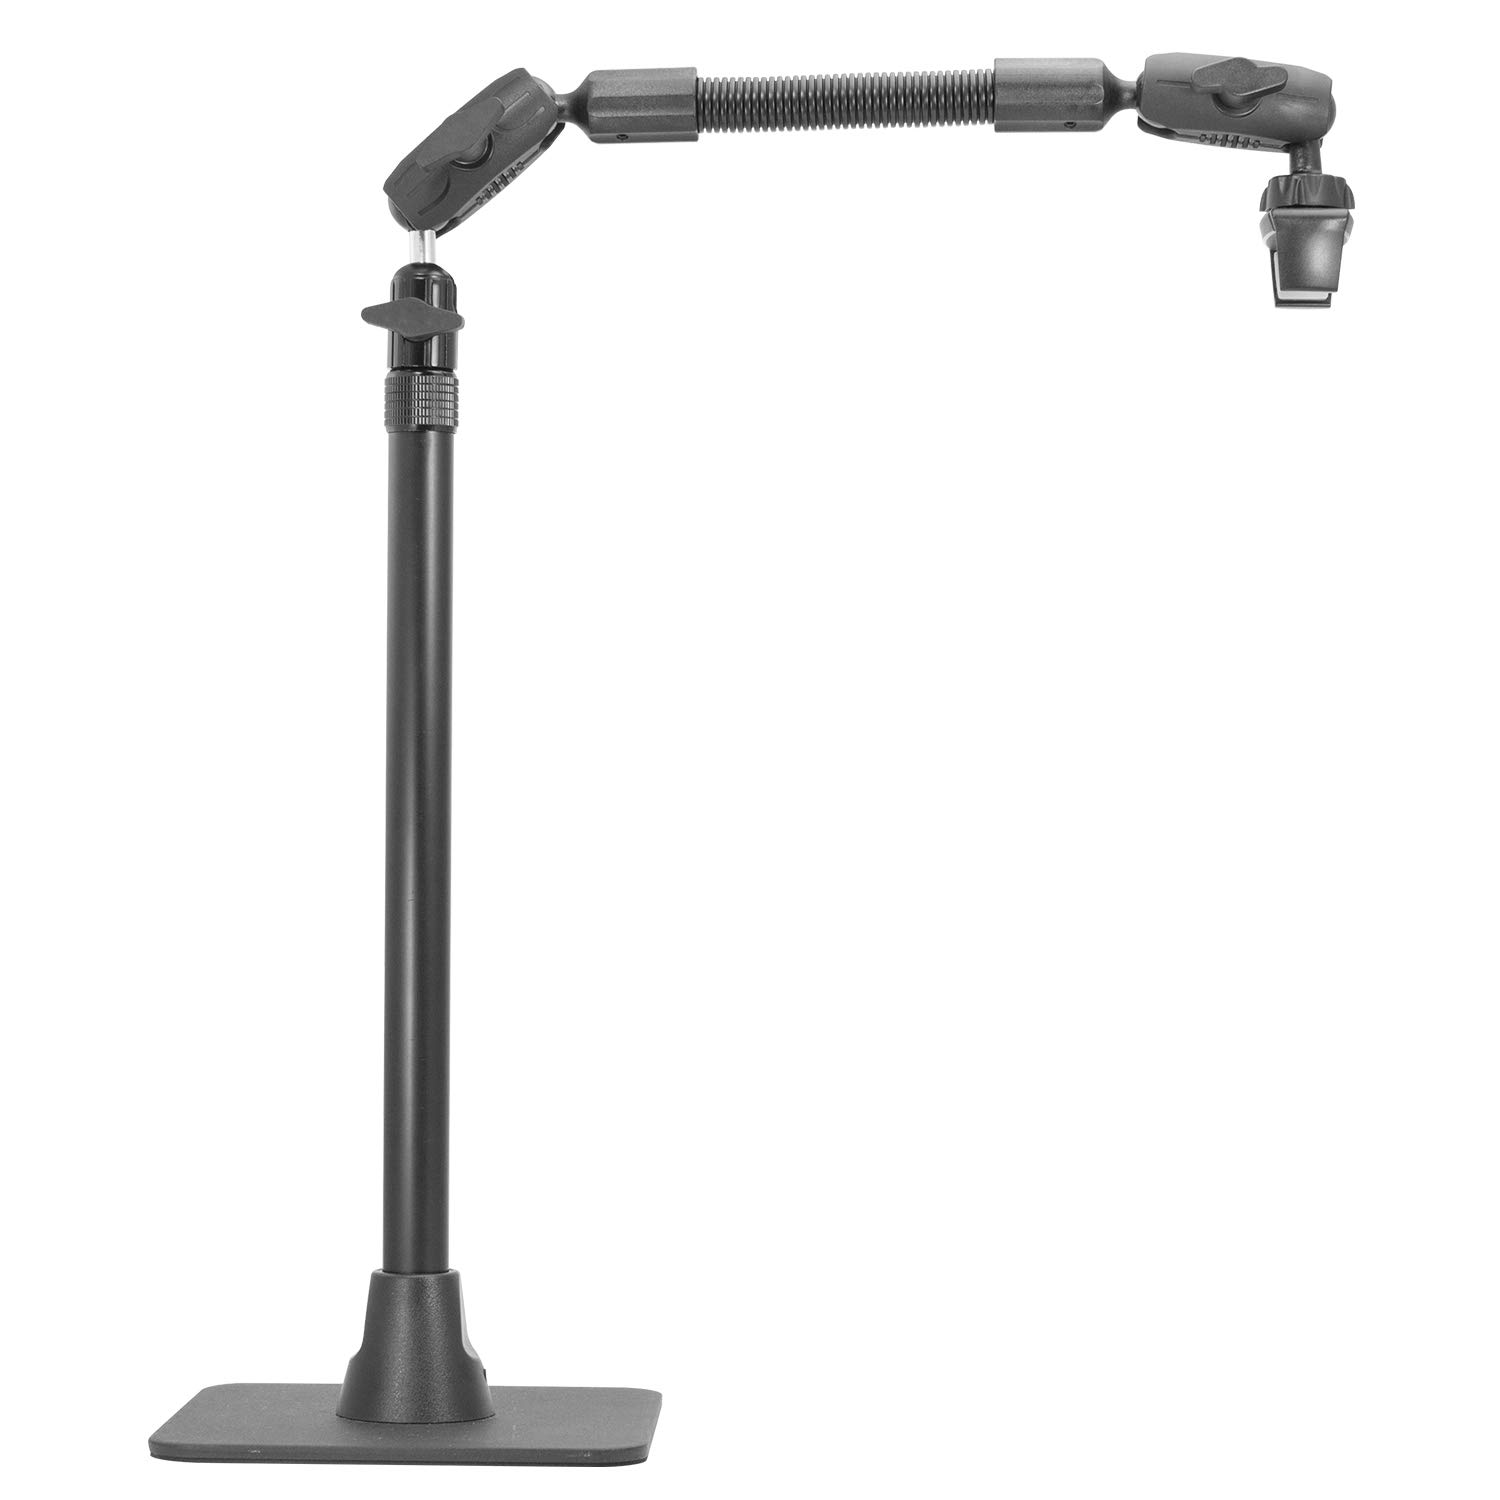 iBOLT Stream-Cast Stand Adjustable Overhead Phone Mount for Live Streaming Tutorial Videos and Photos. Great for Crafters, Bakers, Artists- iPhone Xs, Samsung Galaxy S9, Note 9 Etc.